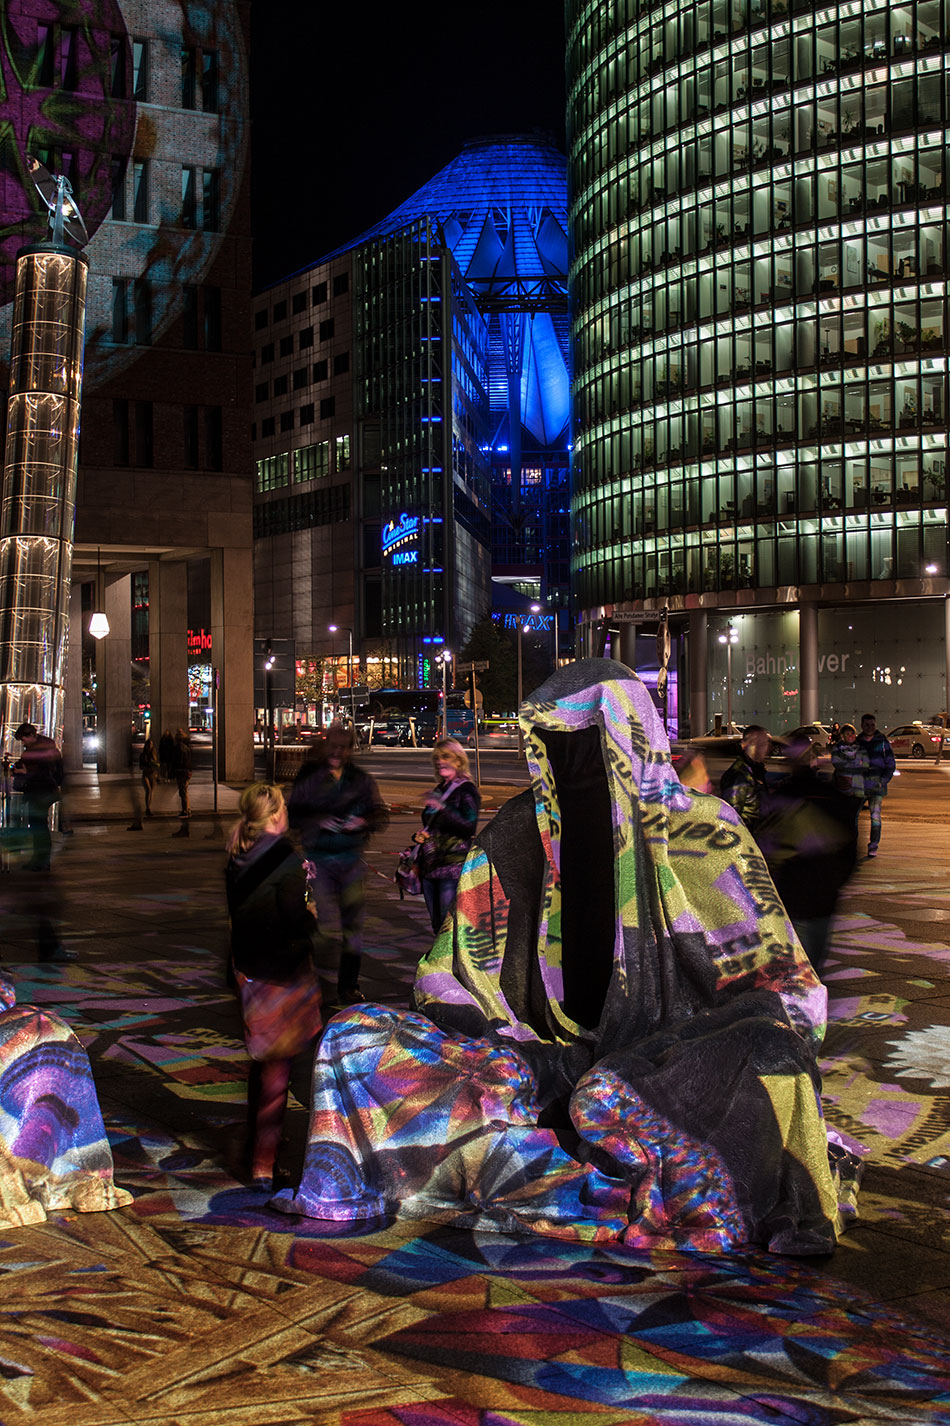 festival-of-lights-berlin-potzdamer-platz-light-art-show-exhibition-lumina-guardians-of-time-manfred-kili-kielnhofer-contemporary-arts-design-large-scale-monumental-public-sculpture-3670